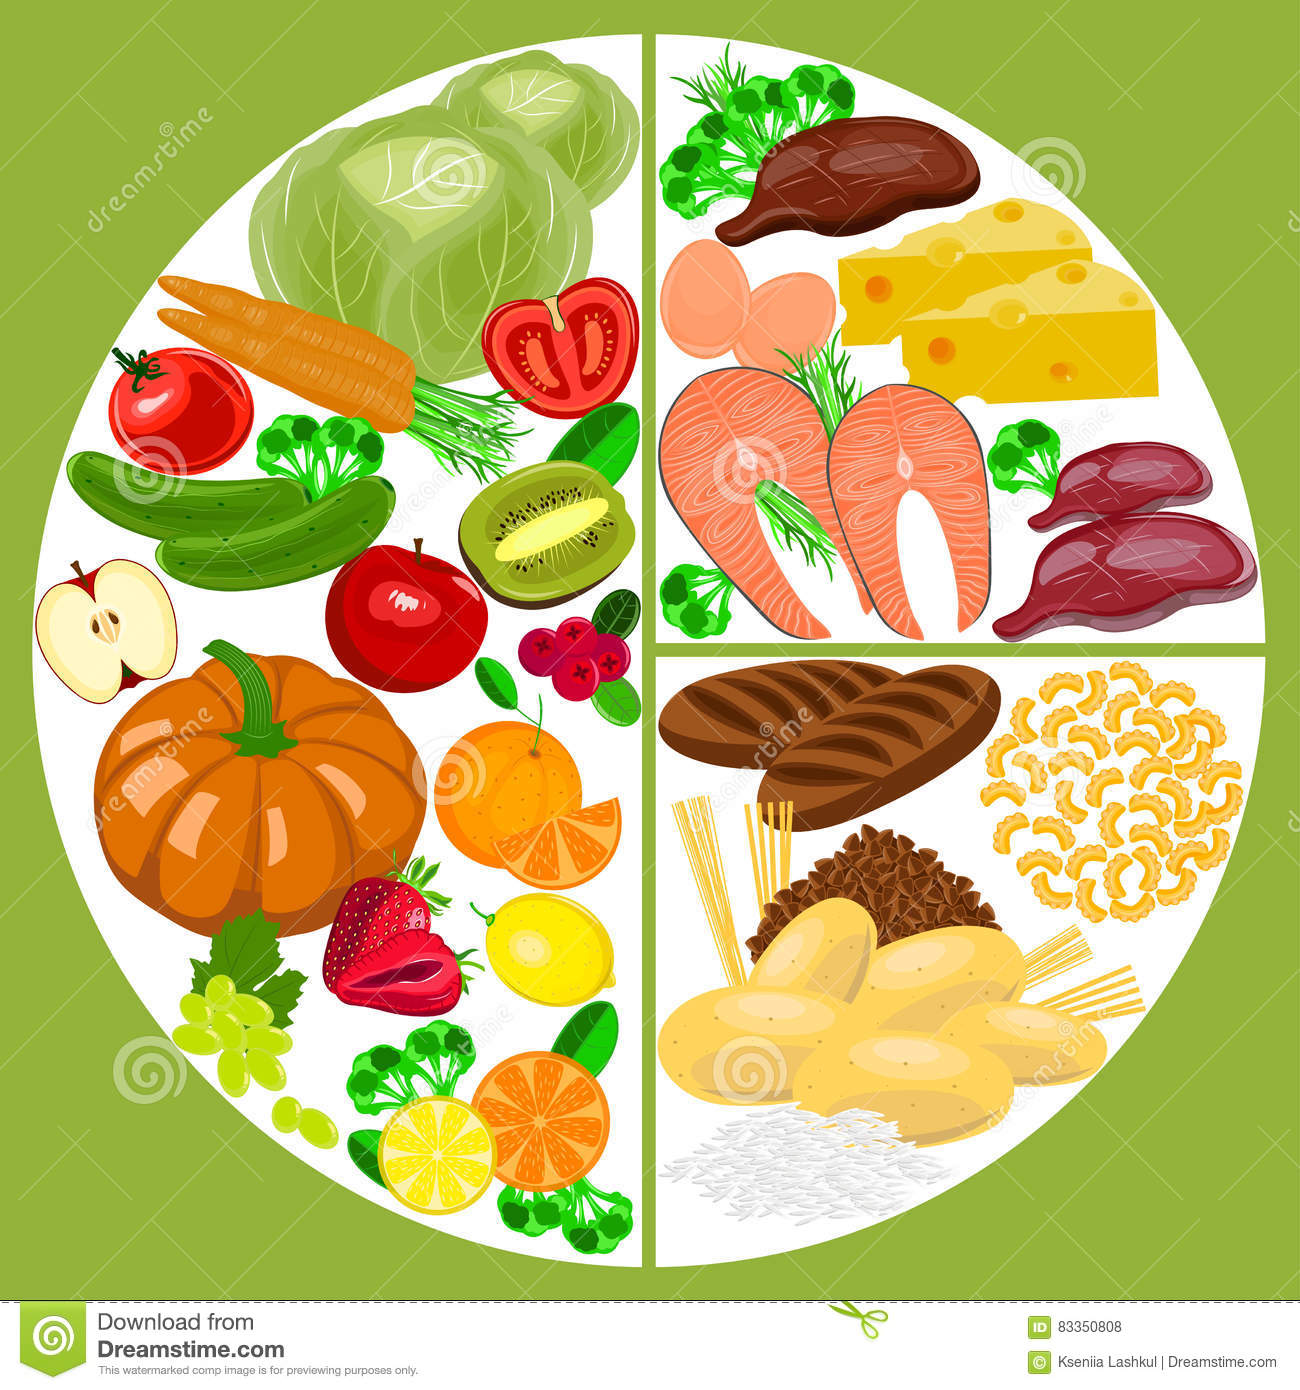 Healthy eating food plate nutrition balance stock vector healthy eating food plate nutrition balance pooptronica Gallery